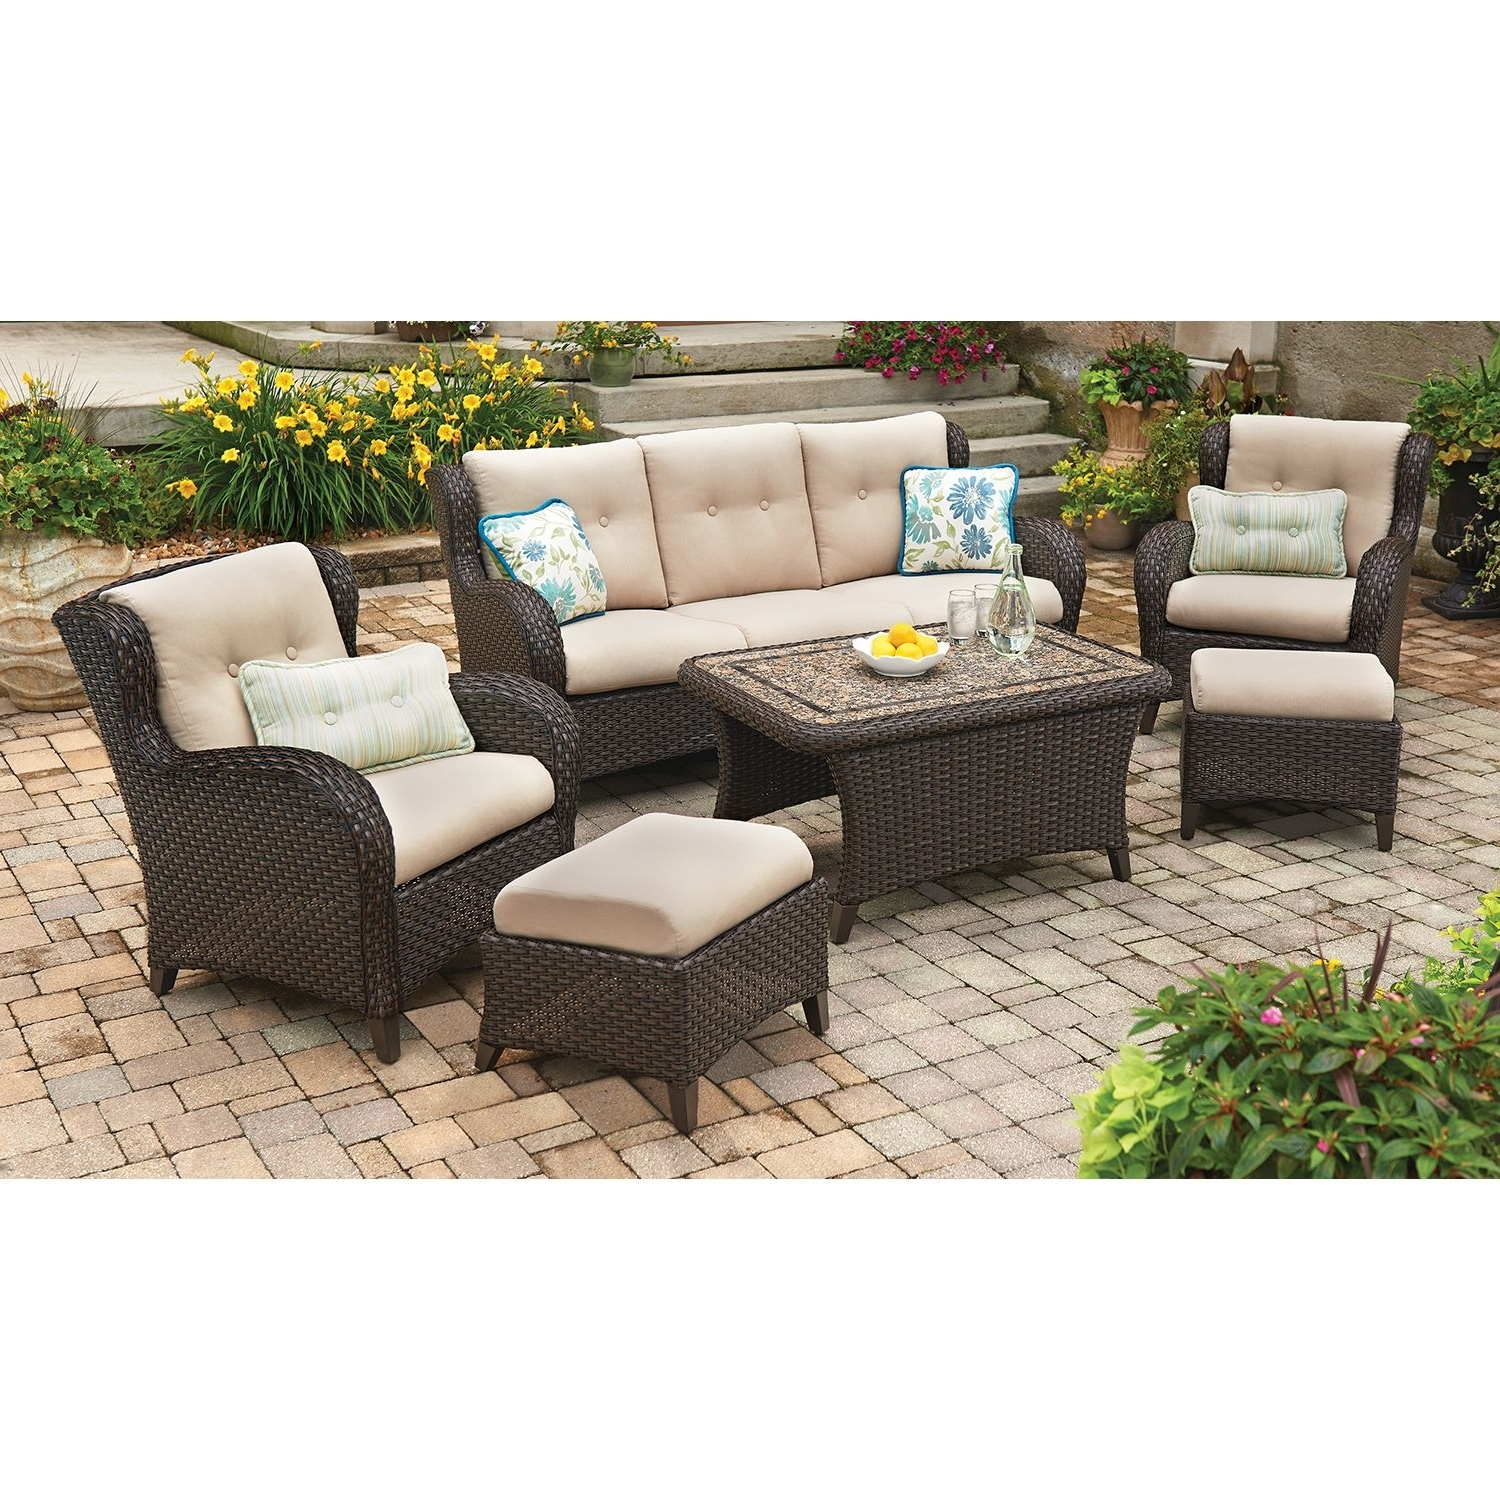 Most Recently Released Member's Mark Heritage 6 Piece Deep Seating Set With Premium Within Sam's Club Chaise Lounge Chairs (View 7 of 15)